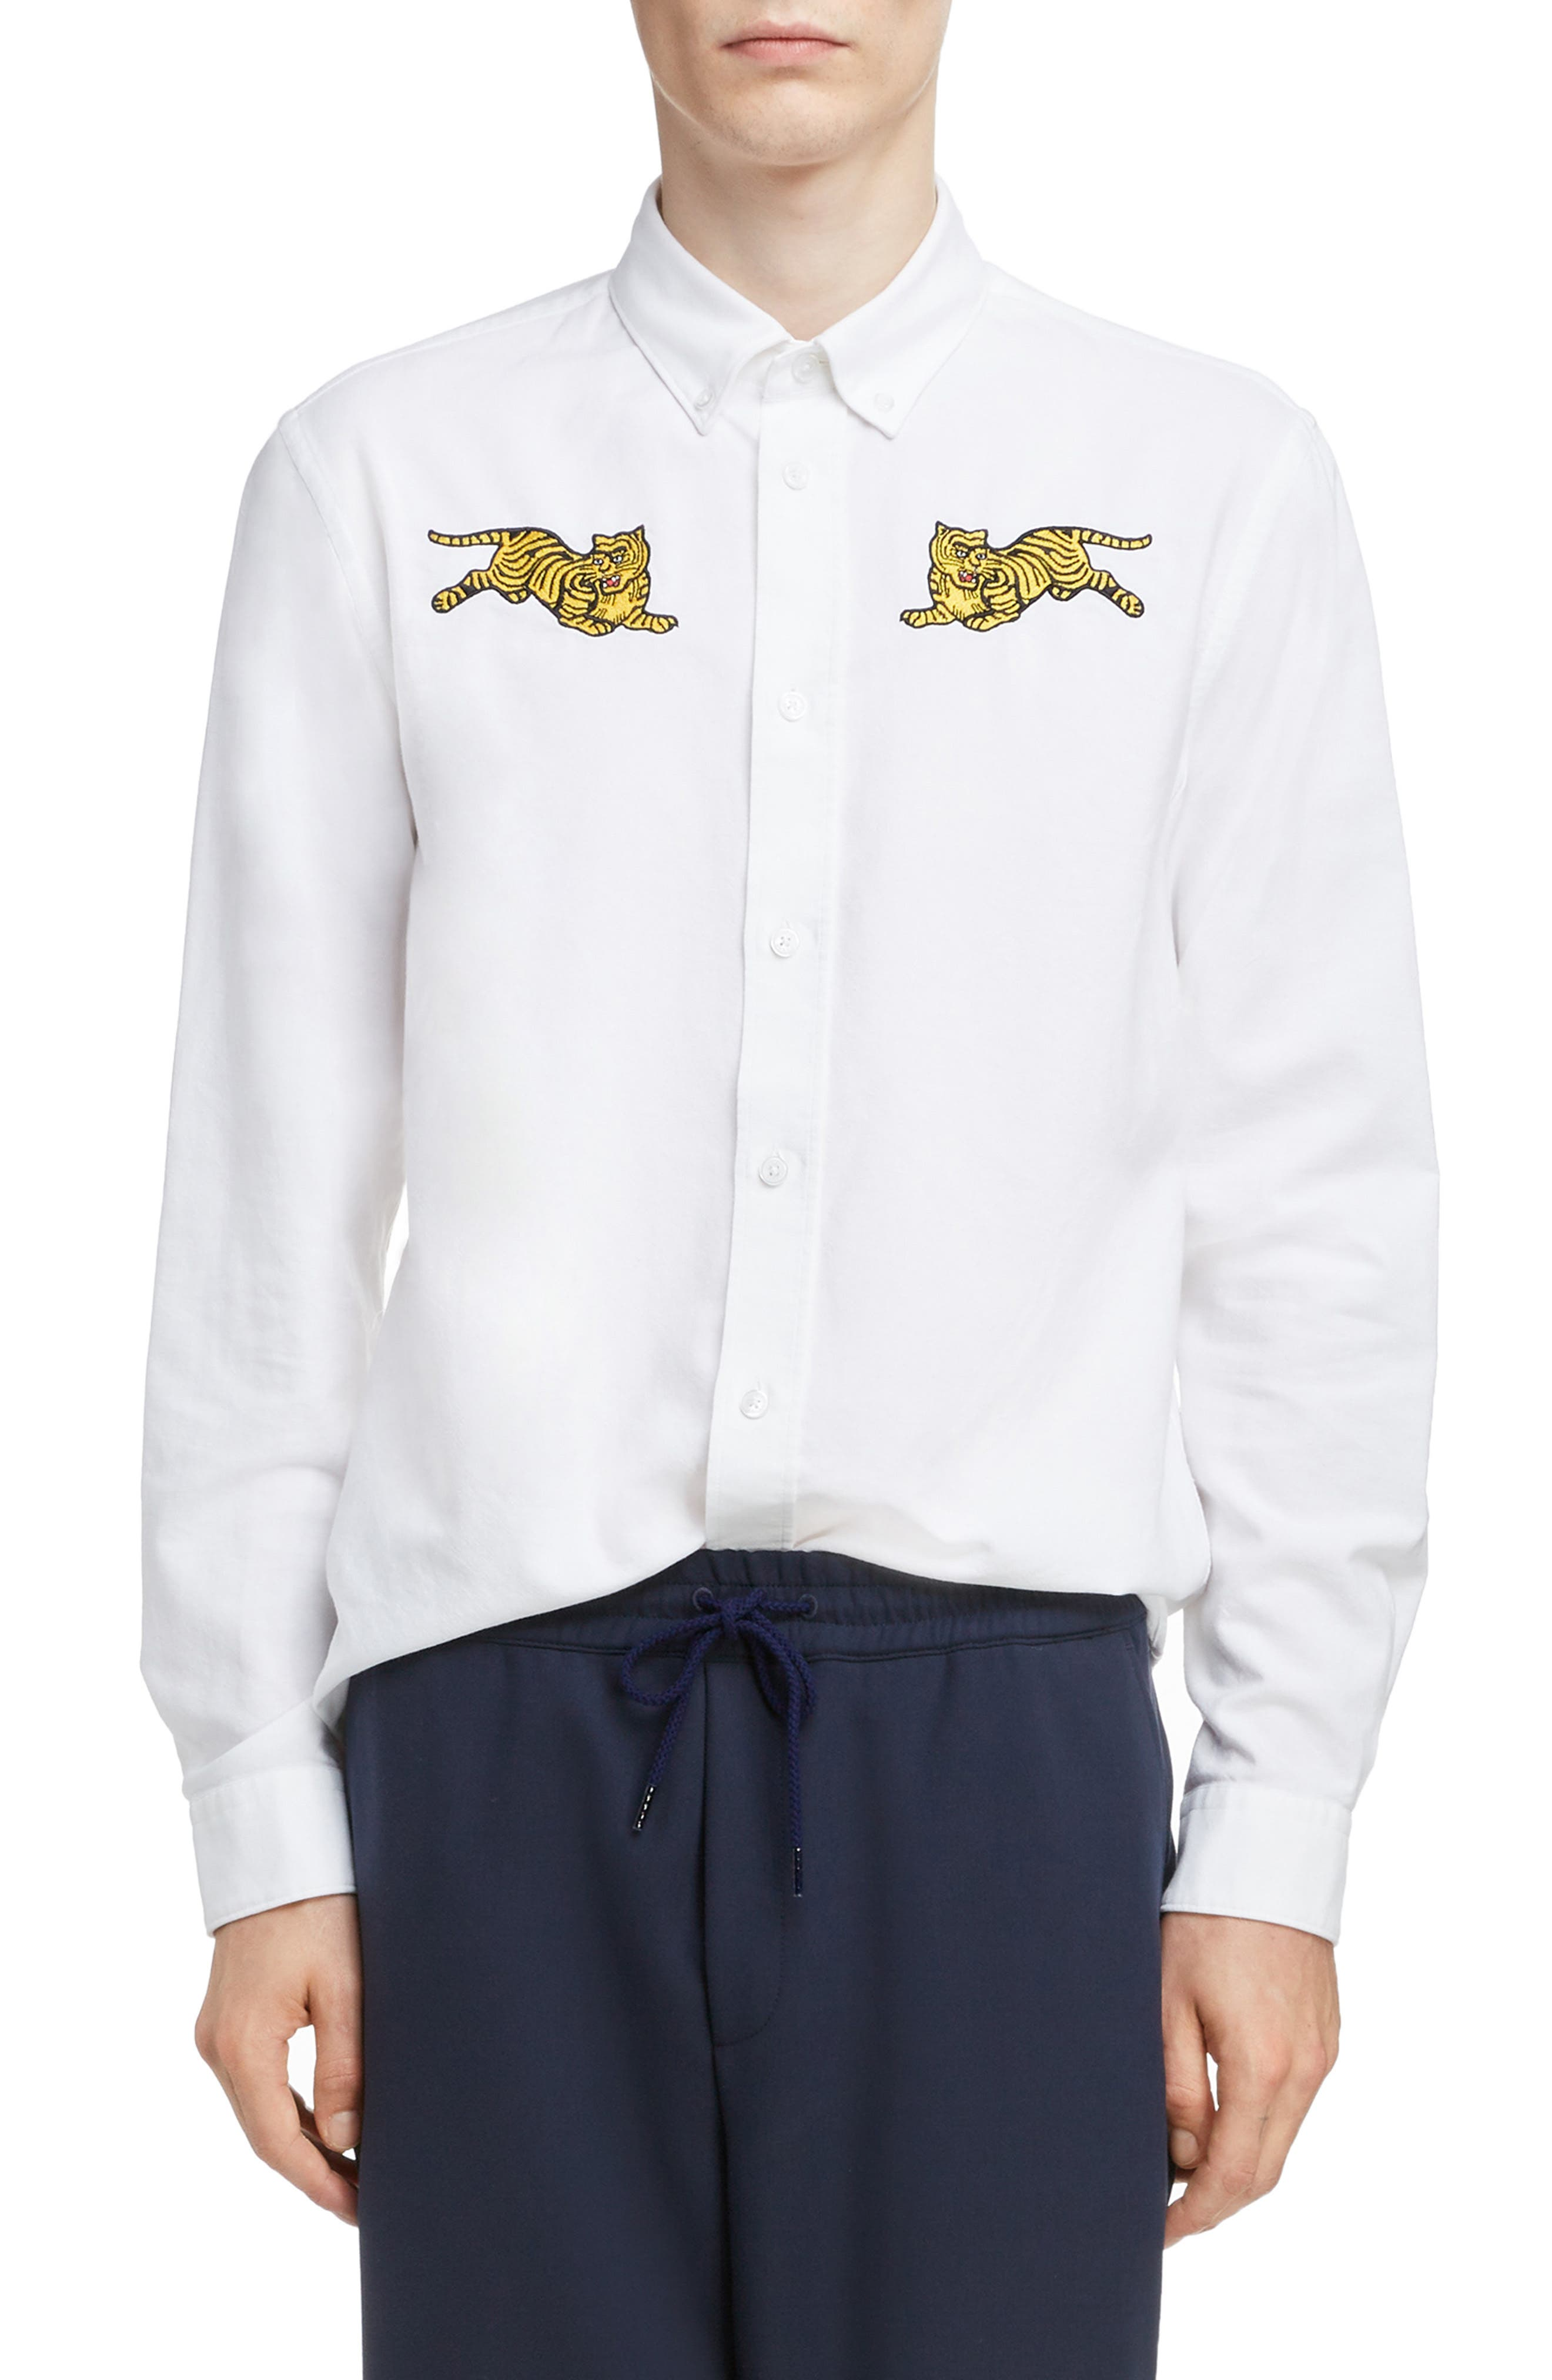 KENZO,                             Jumping Tiger Crest Woven Shirt,                             Main thumbnail 1, color,                             WHITE